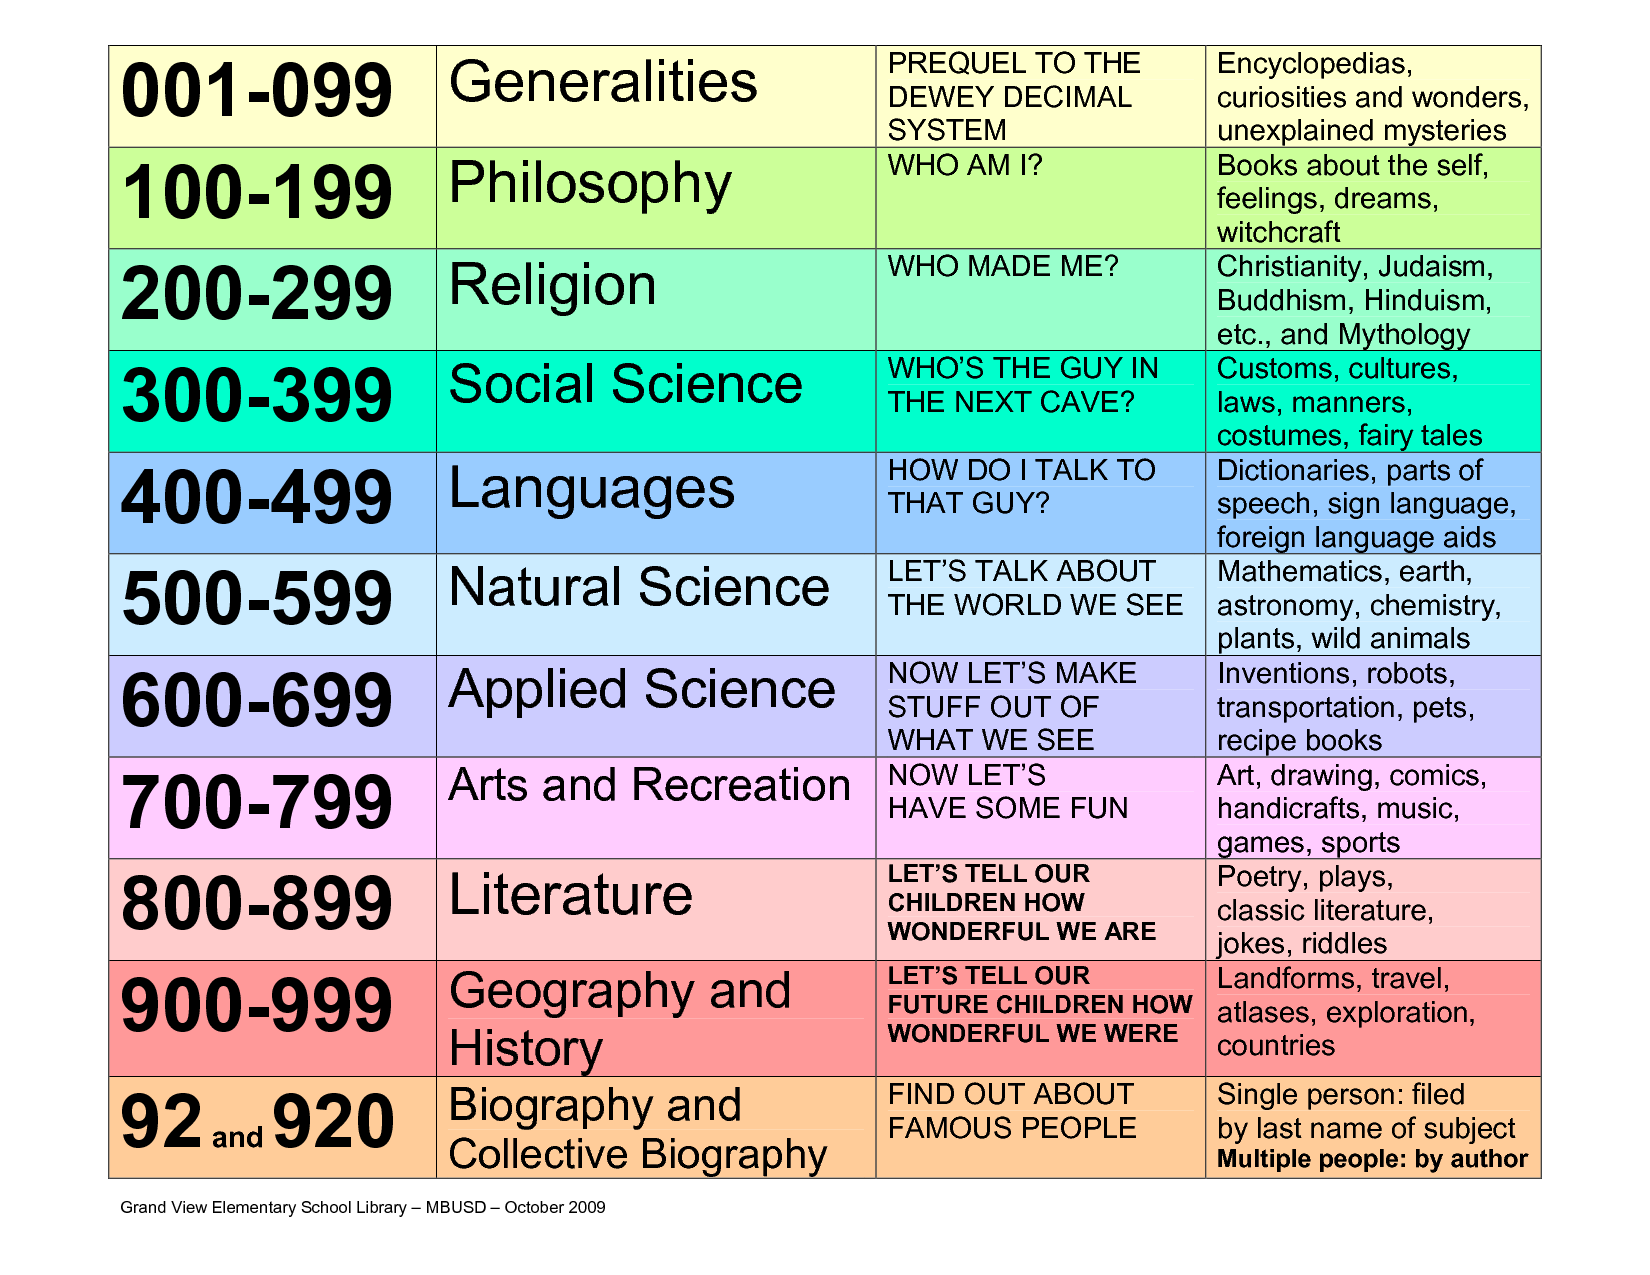 DEWEY DECIMAL CLASSIFICATION CHART - Dewey Decimal System PNG